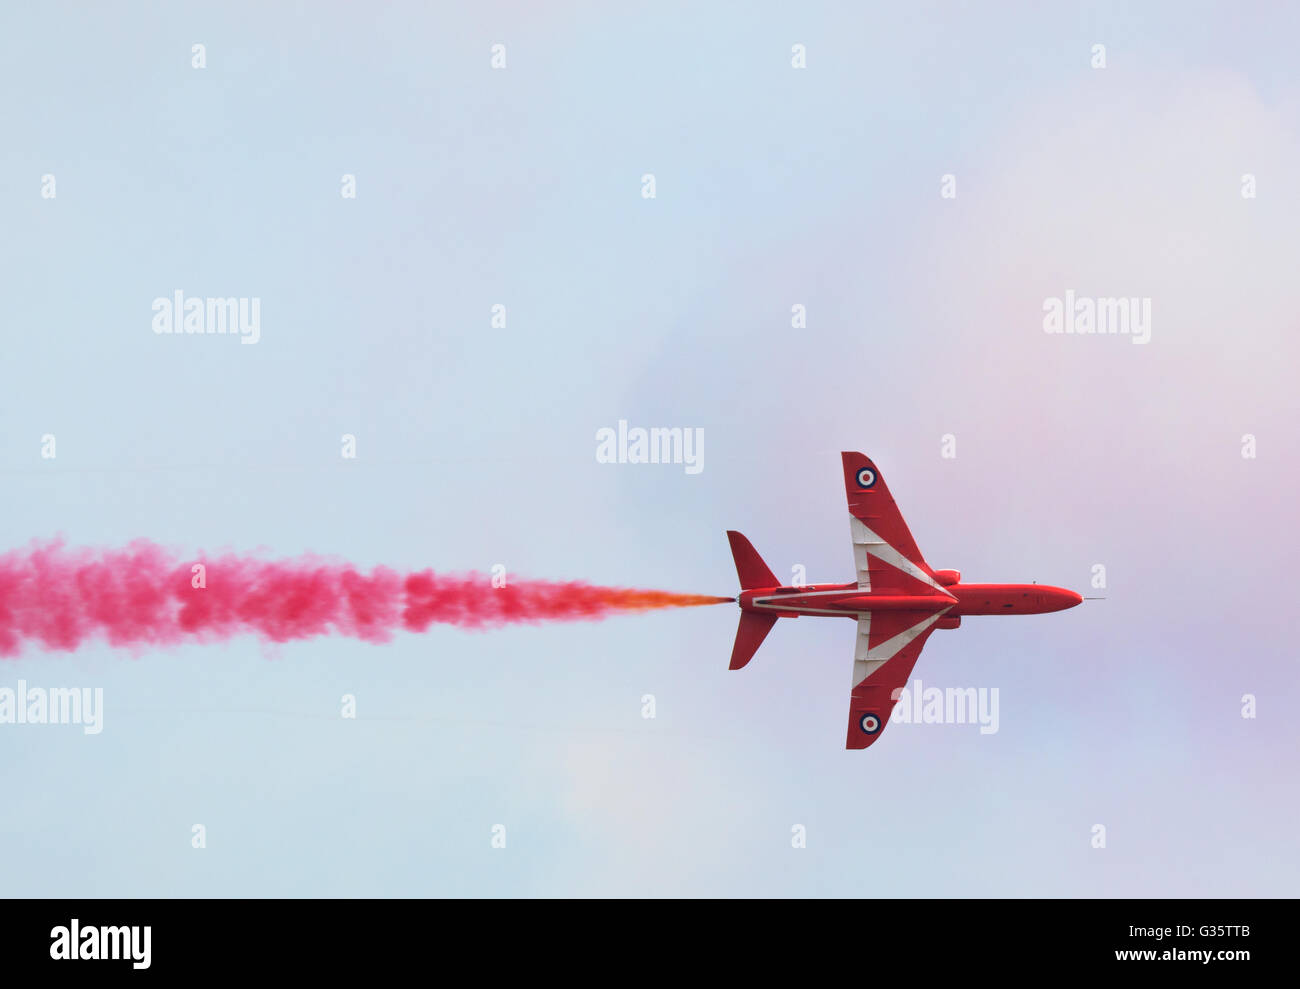 Red Arrows plane flying straight, with colourful red smoke, Duxford Airshow, Cambridgeshire UK - Stock Image